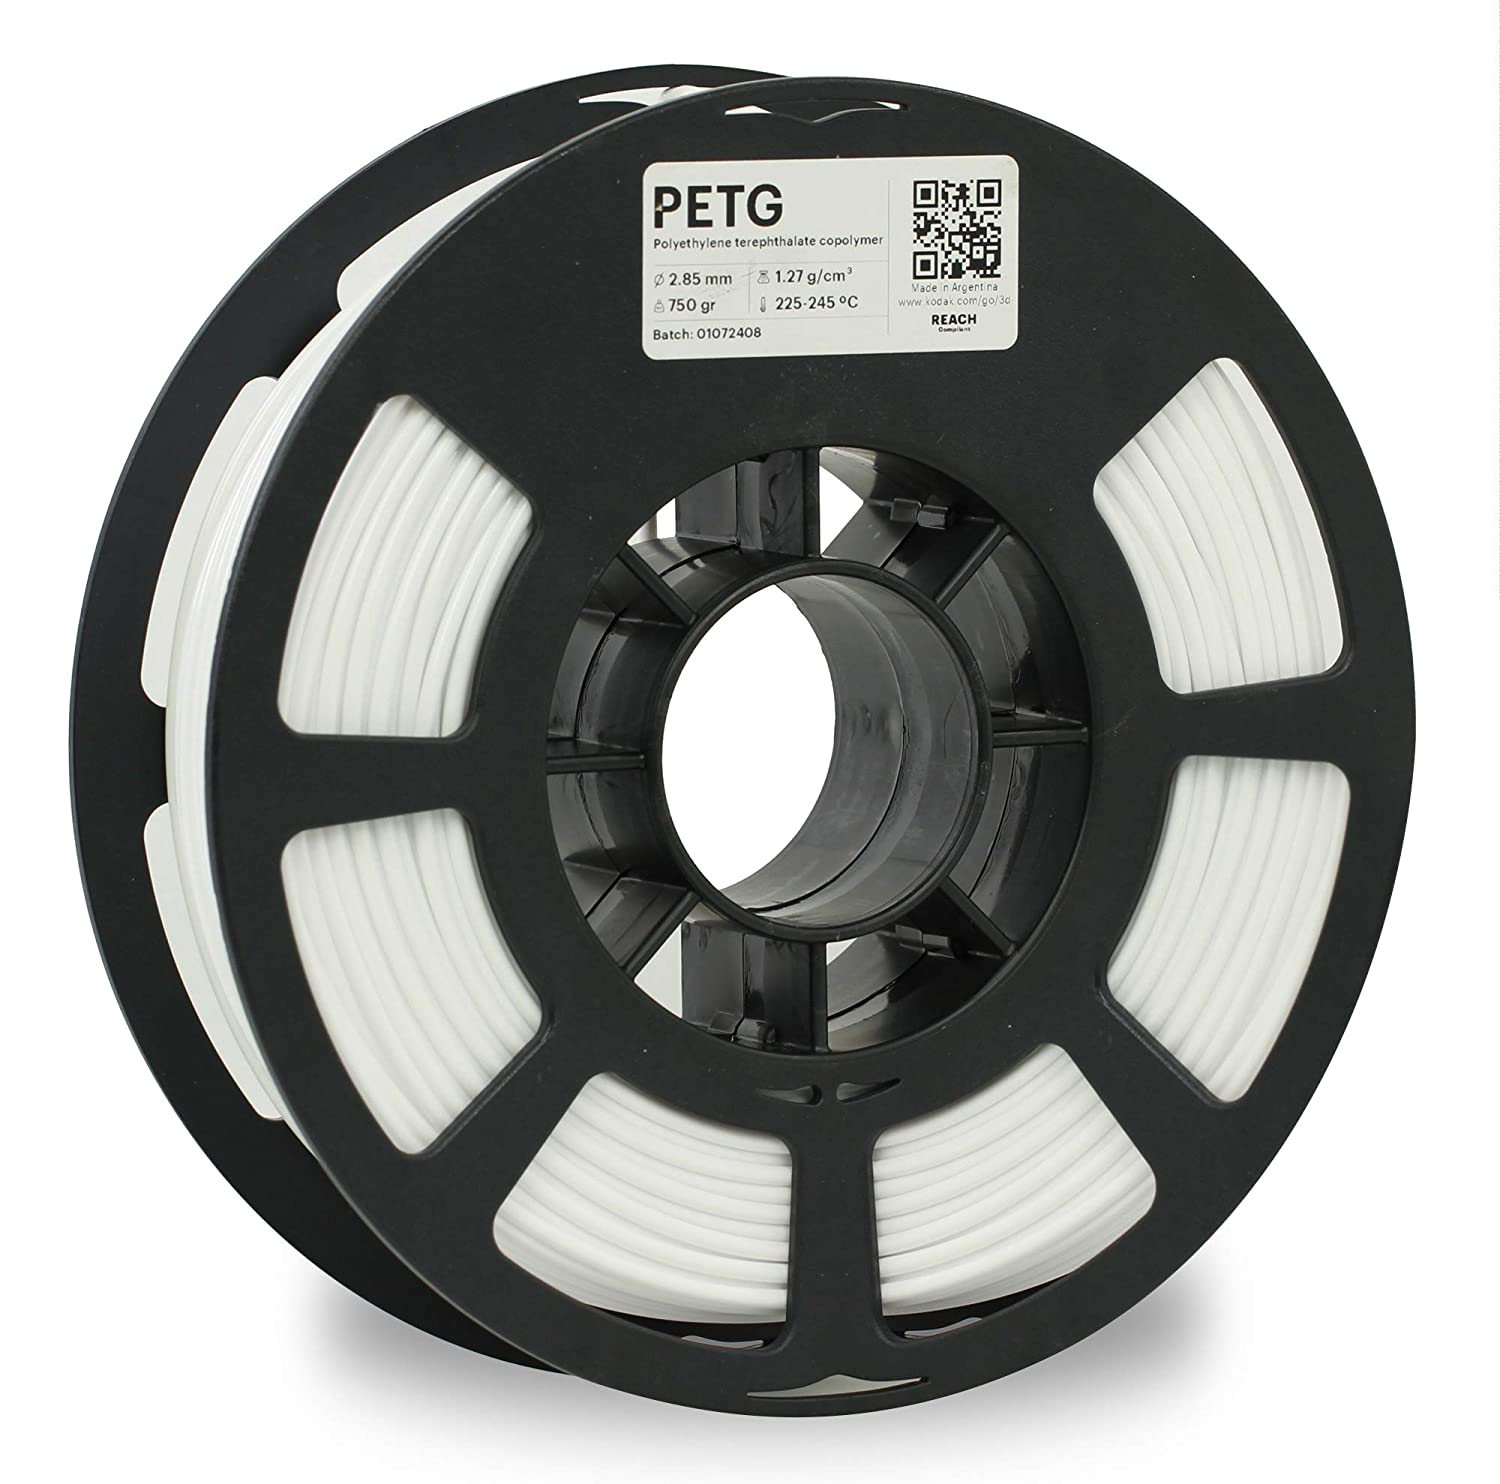 KODAK PETG Filament 2.85mm for 3D Printer, White PETG, Dimensional Accuracy +/- 0.02mm, 750g Spool (1.7lbs) PETG Filament 2.85 Used as 3D Filament Consumables to Refill Most FDM Printers